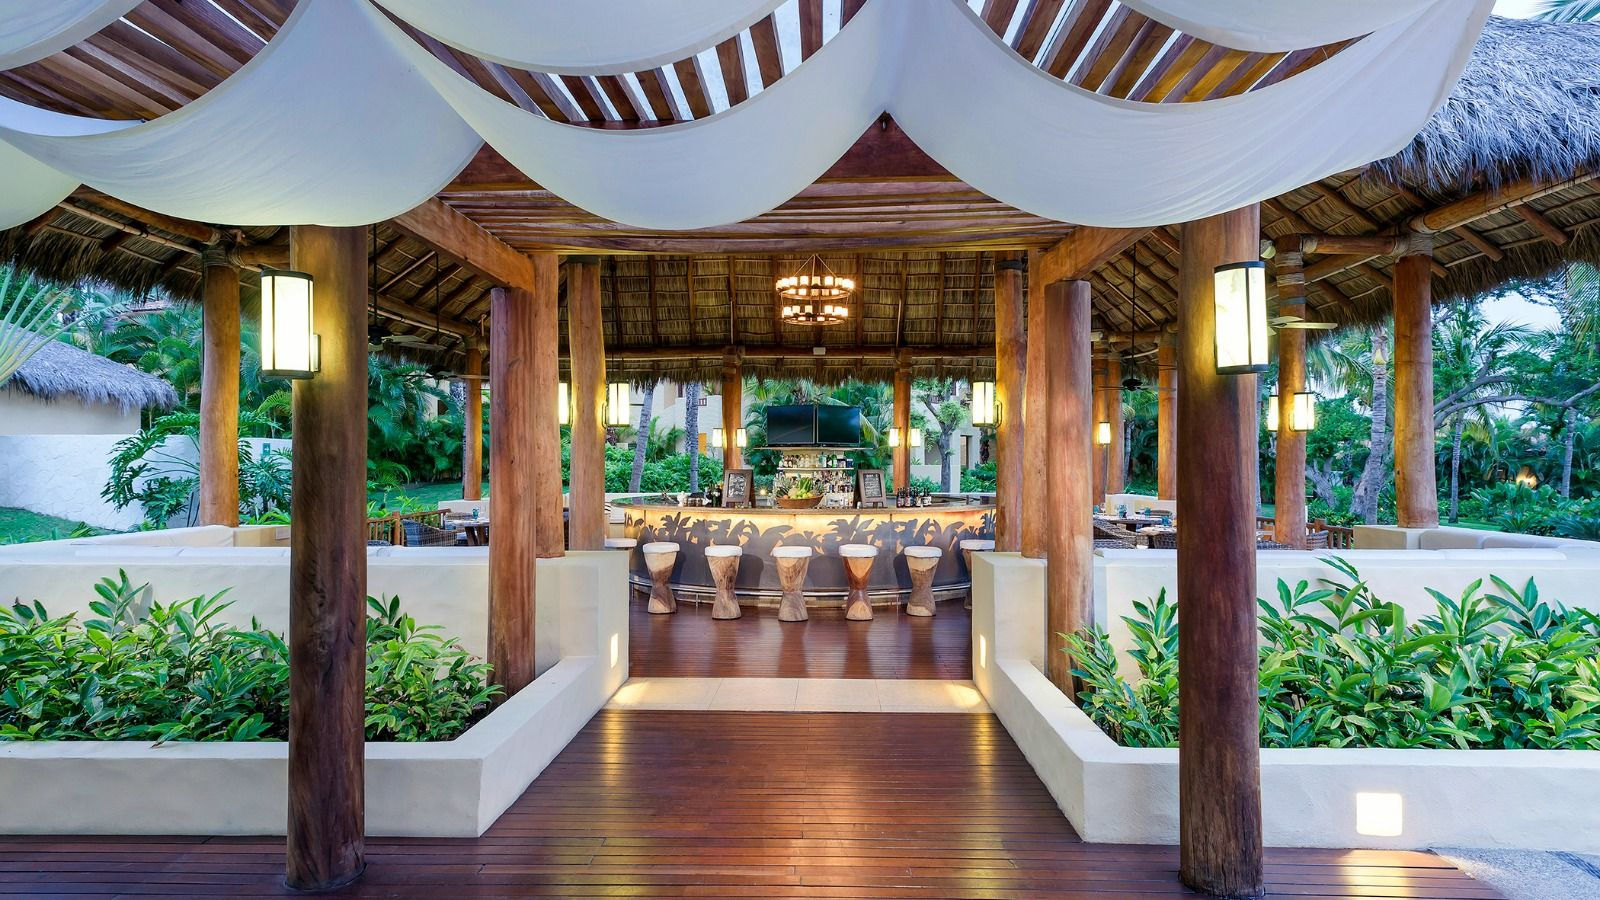 Sea Breeze Restaurant - St. Regis Punta Mita